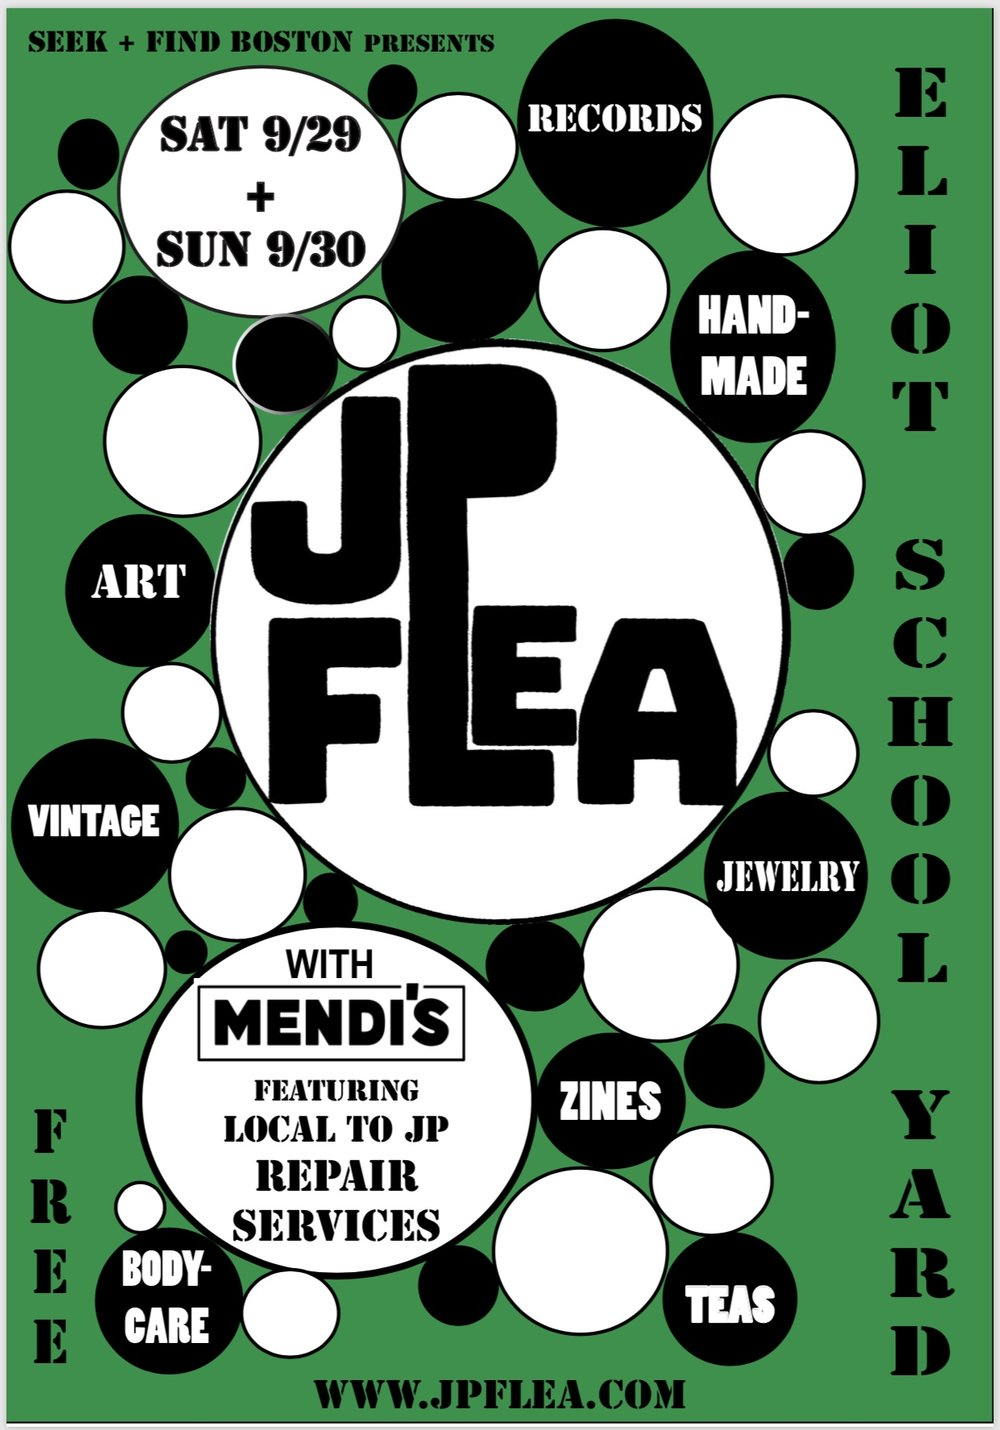 The Clack will be vending at the JP Flea on Saturday, Sept. 29th. Come on out!